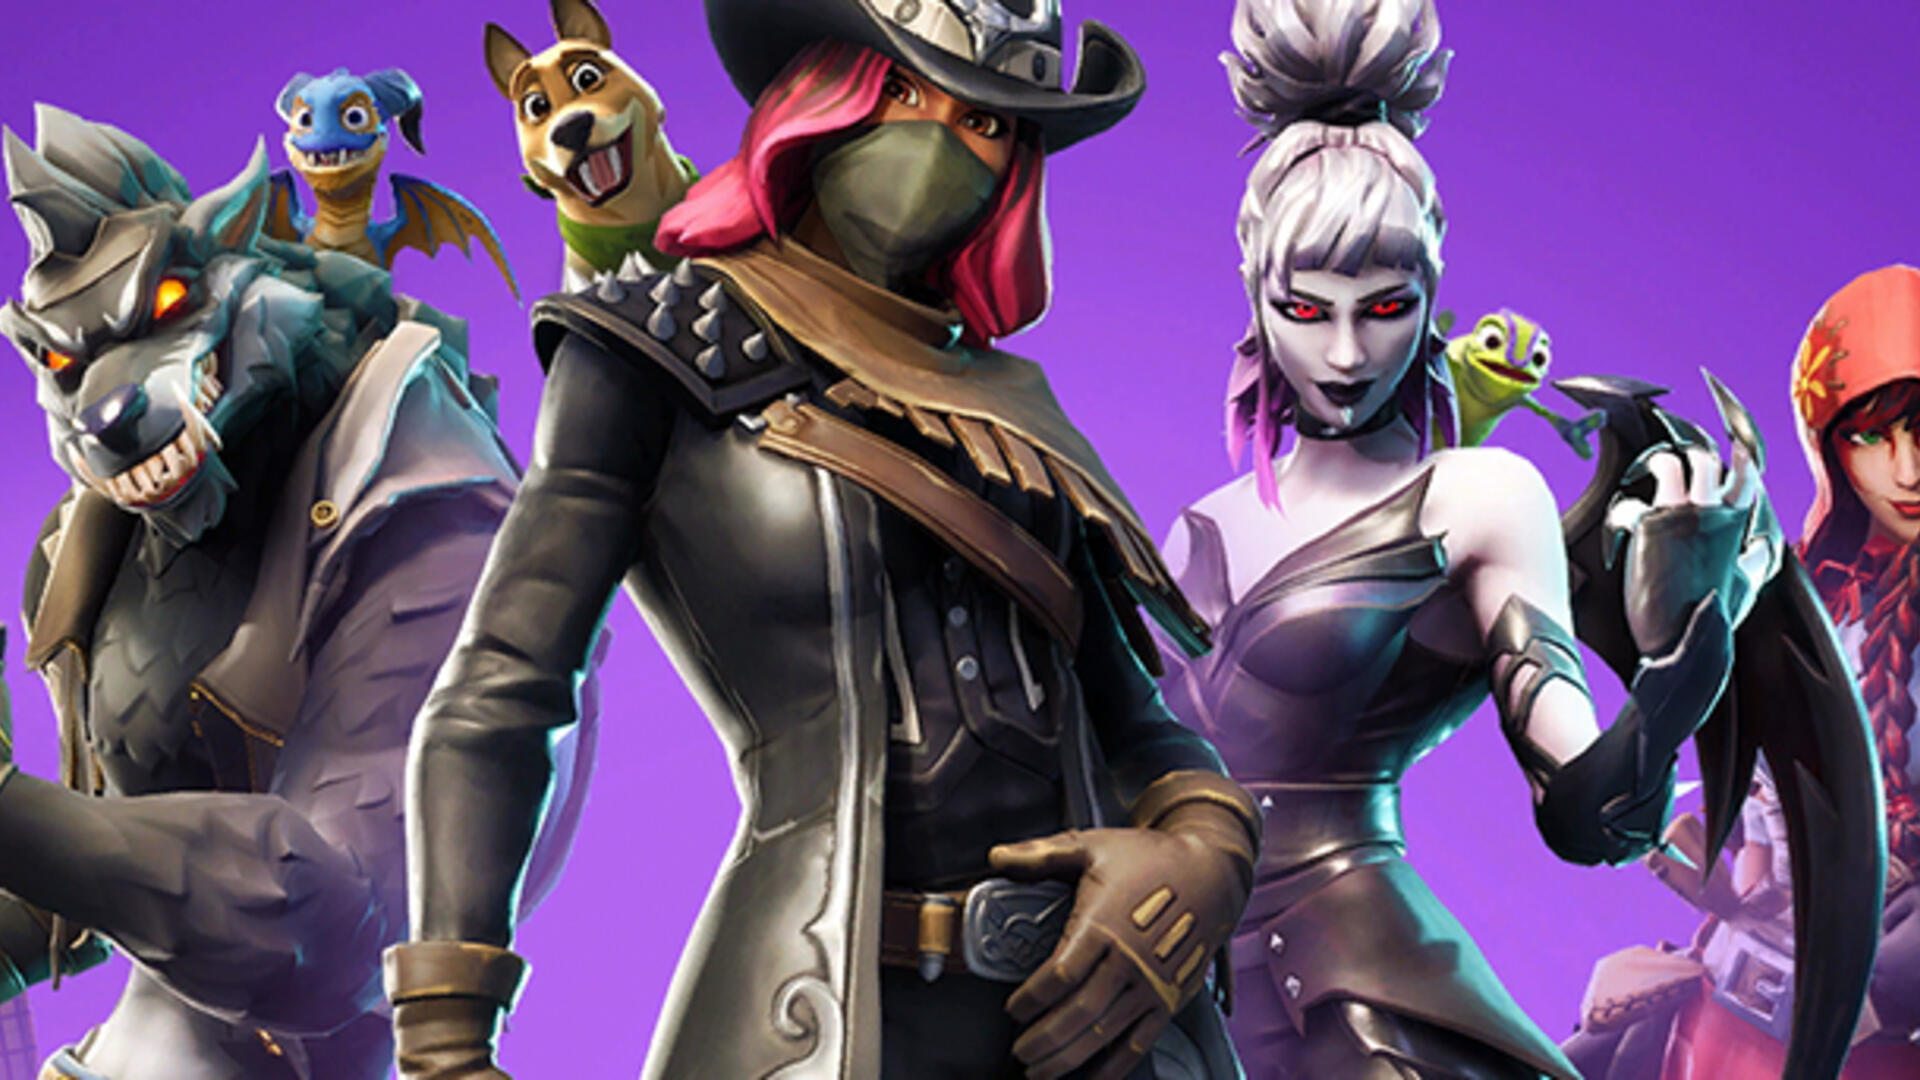 Fortnite, Warframe, and More Get Mouse and Keyboard Support